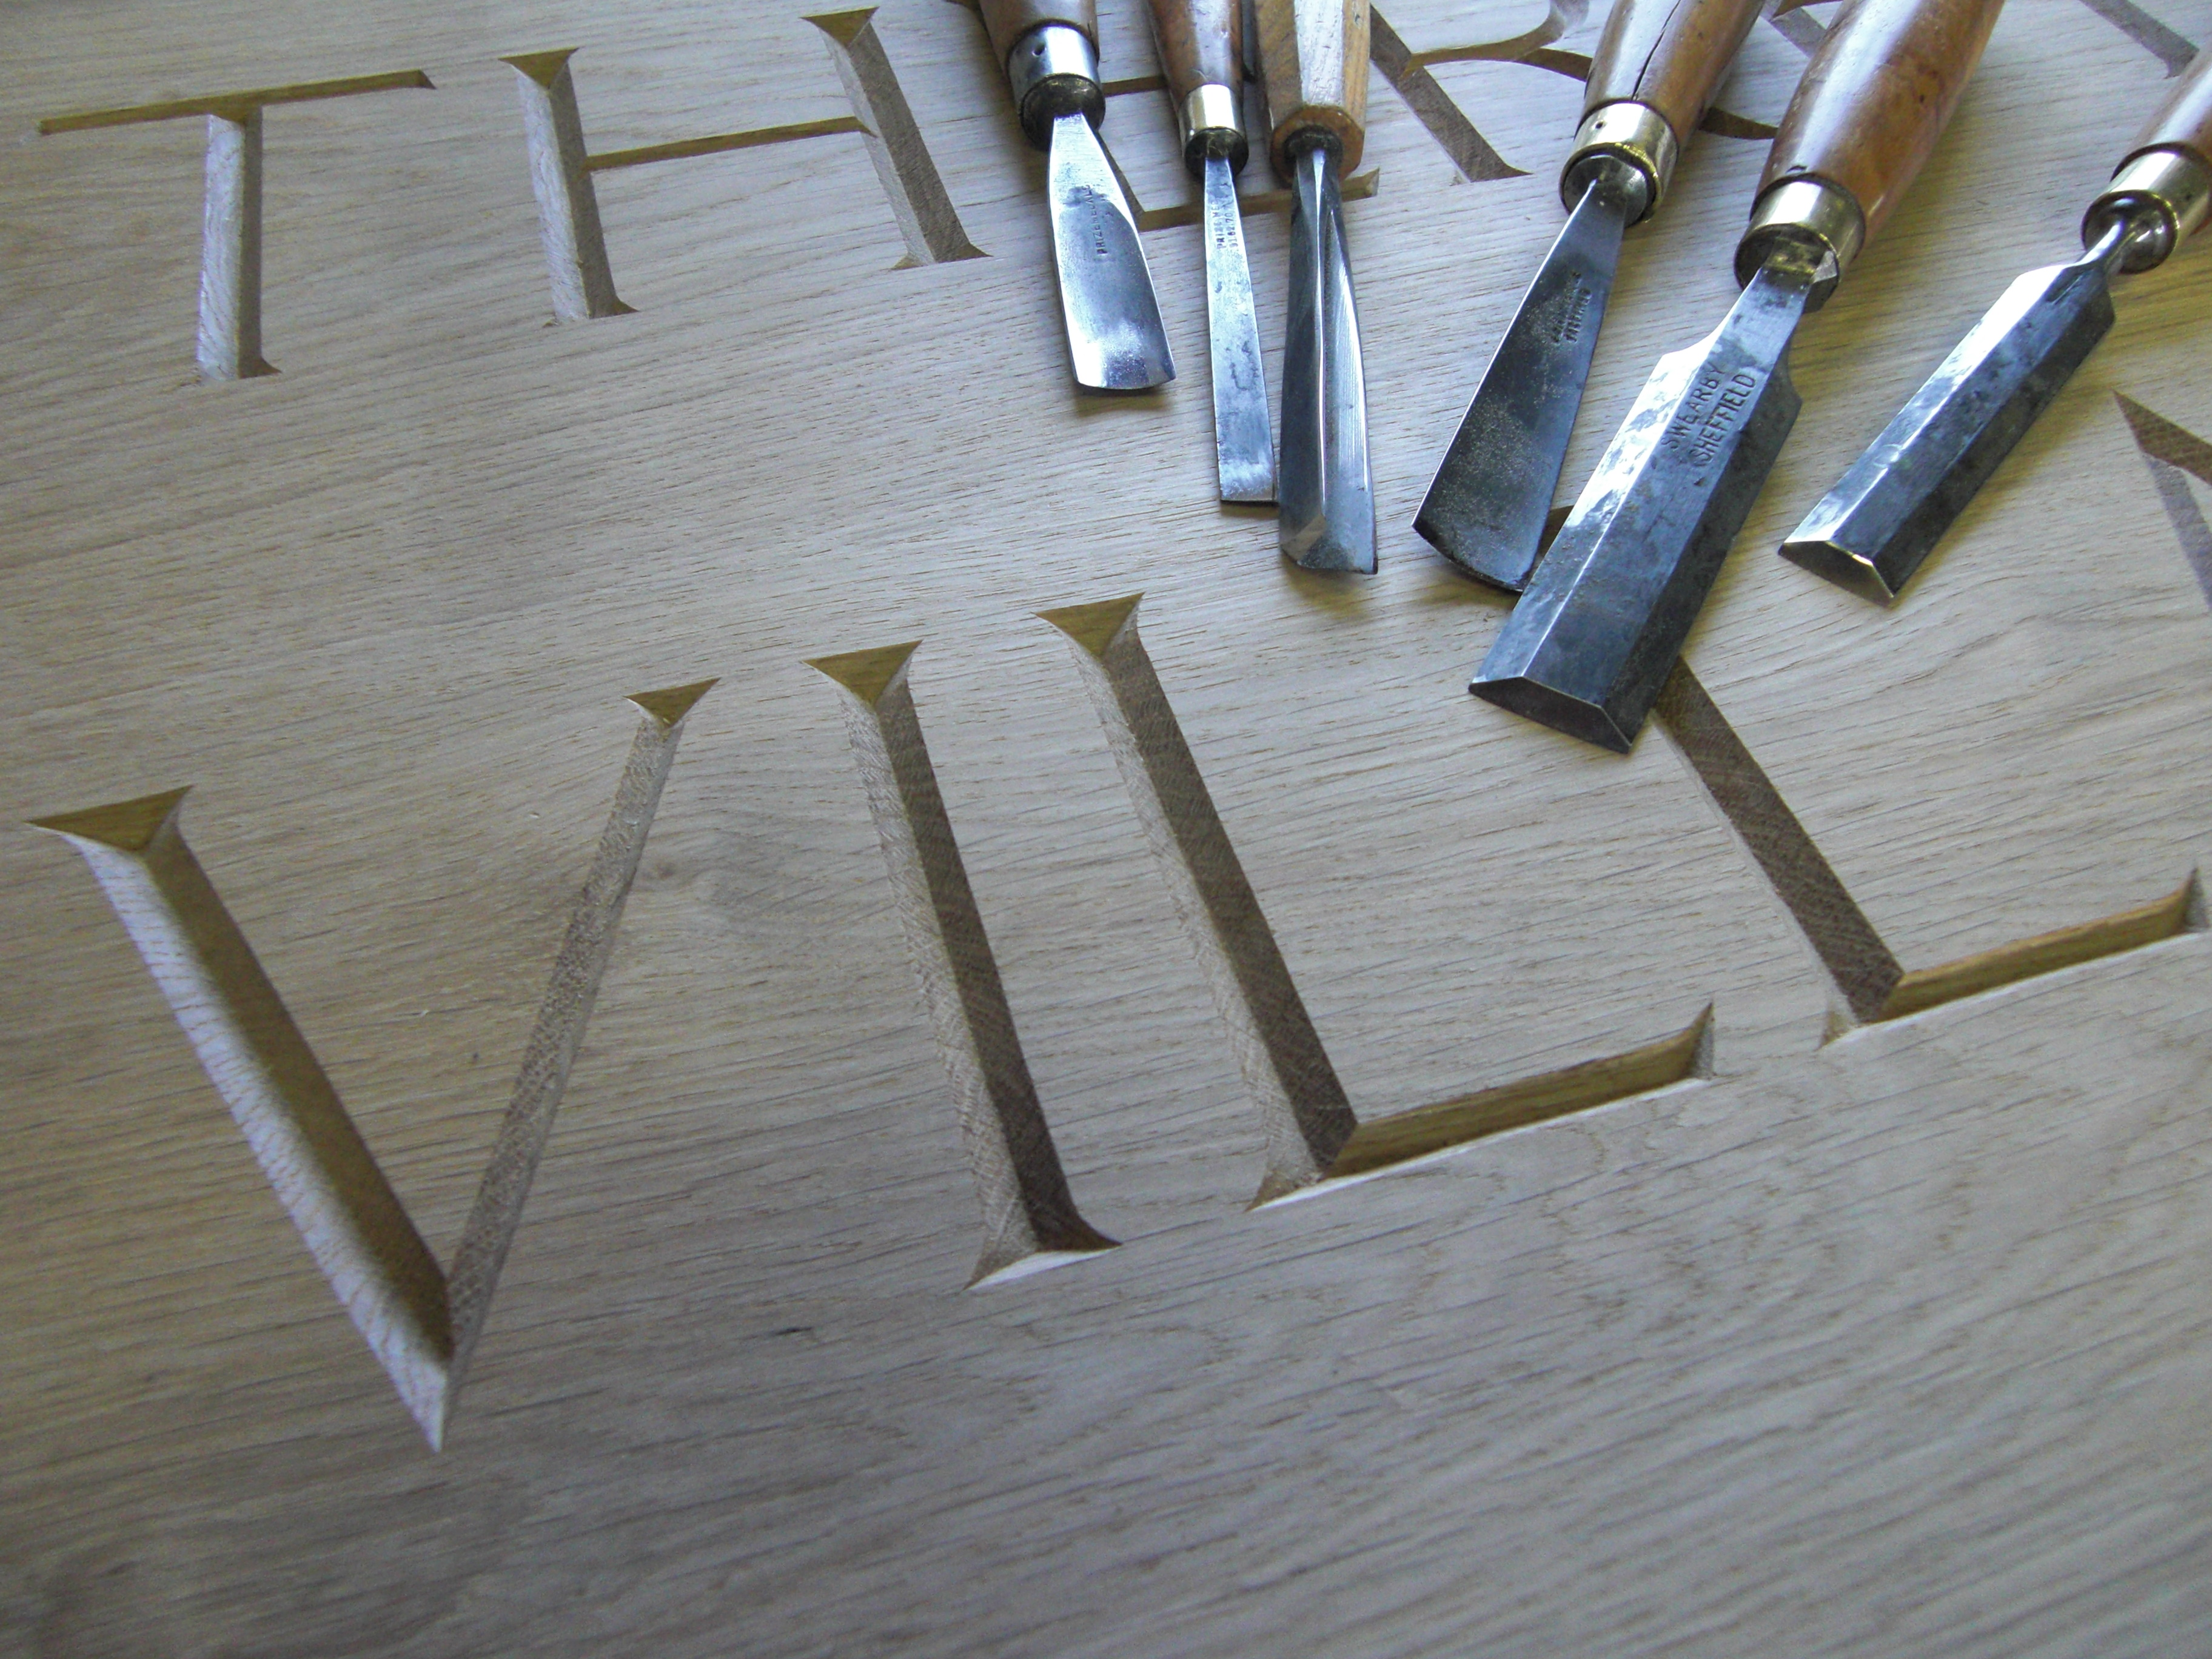 Craved lettering with chisels. board made of oak